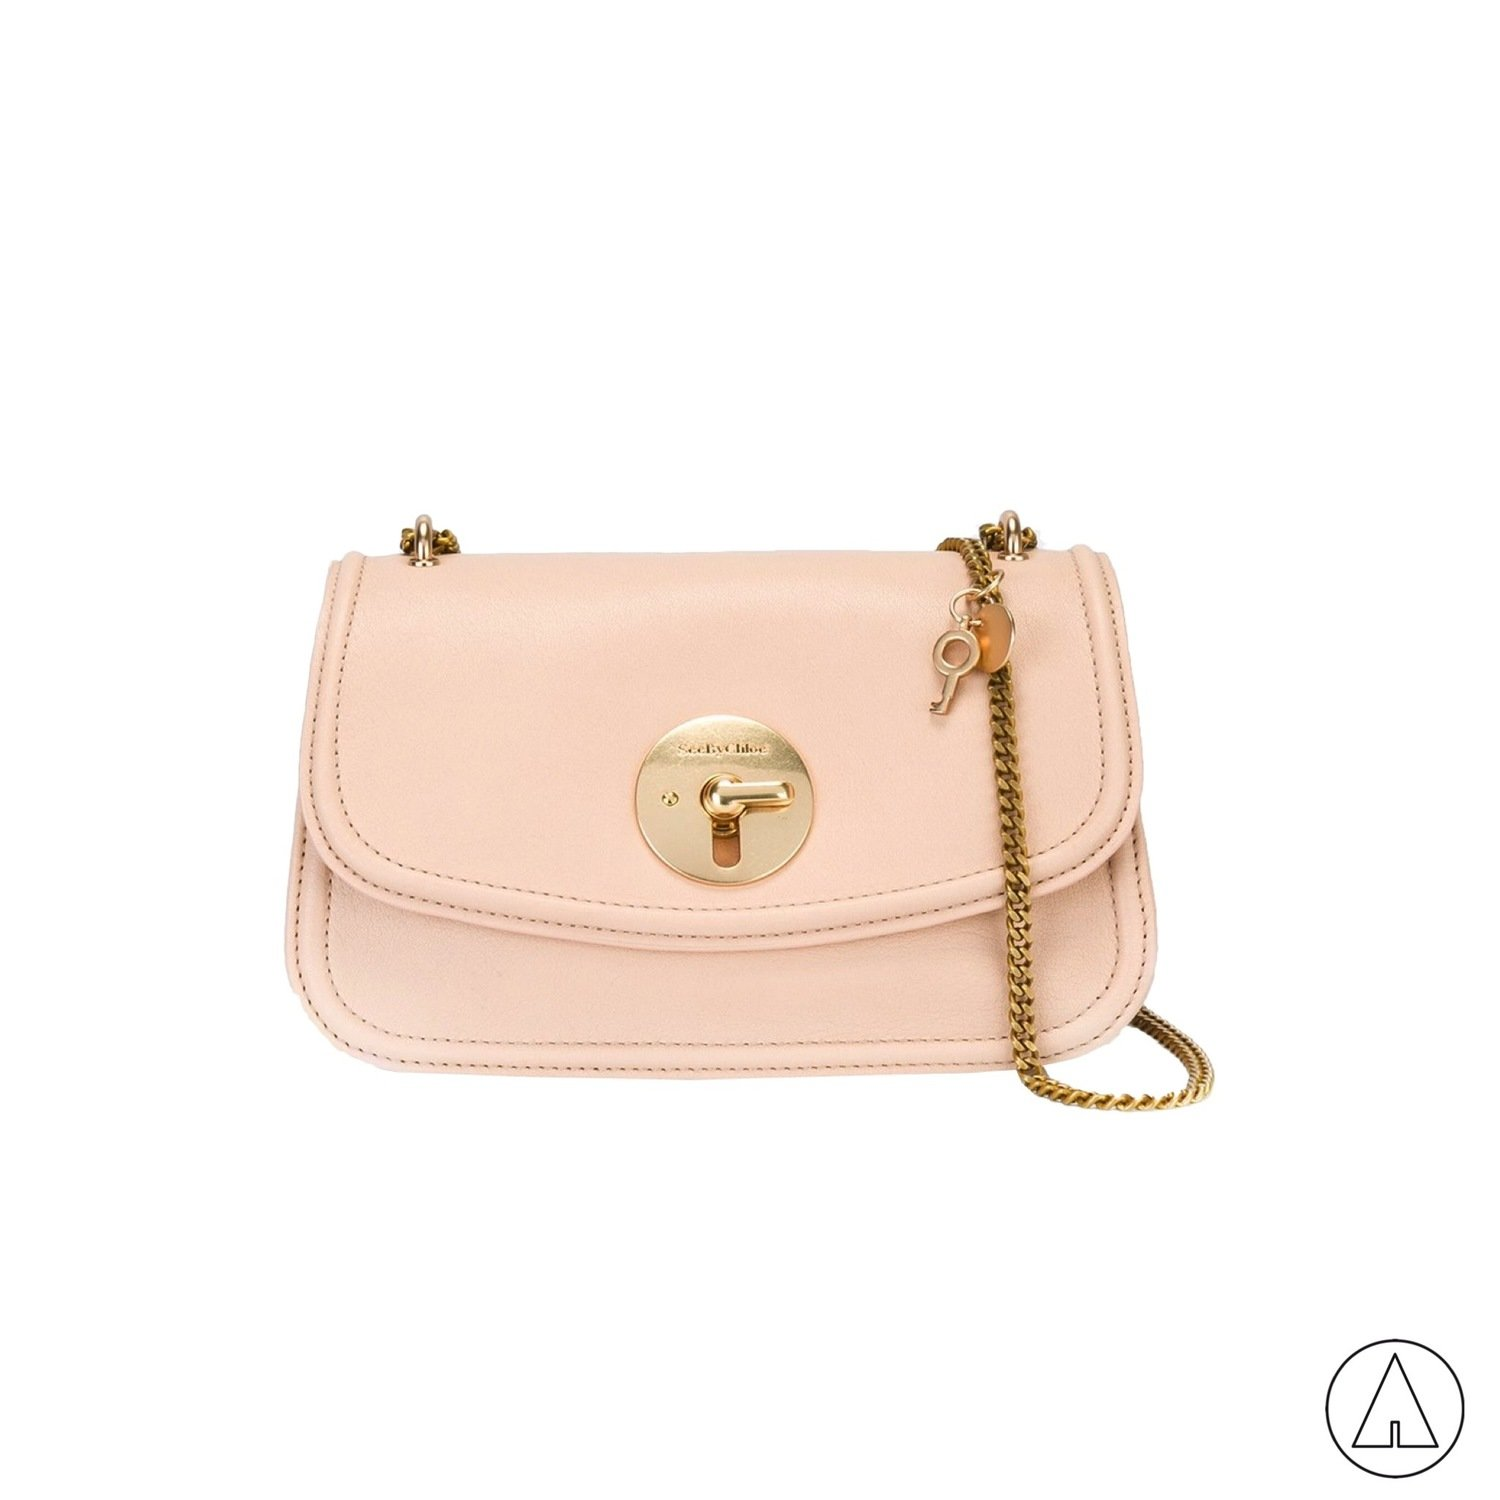 SEE BY CHLOÉ • Lois Shoulder Bag - Nude